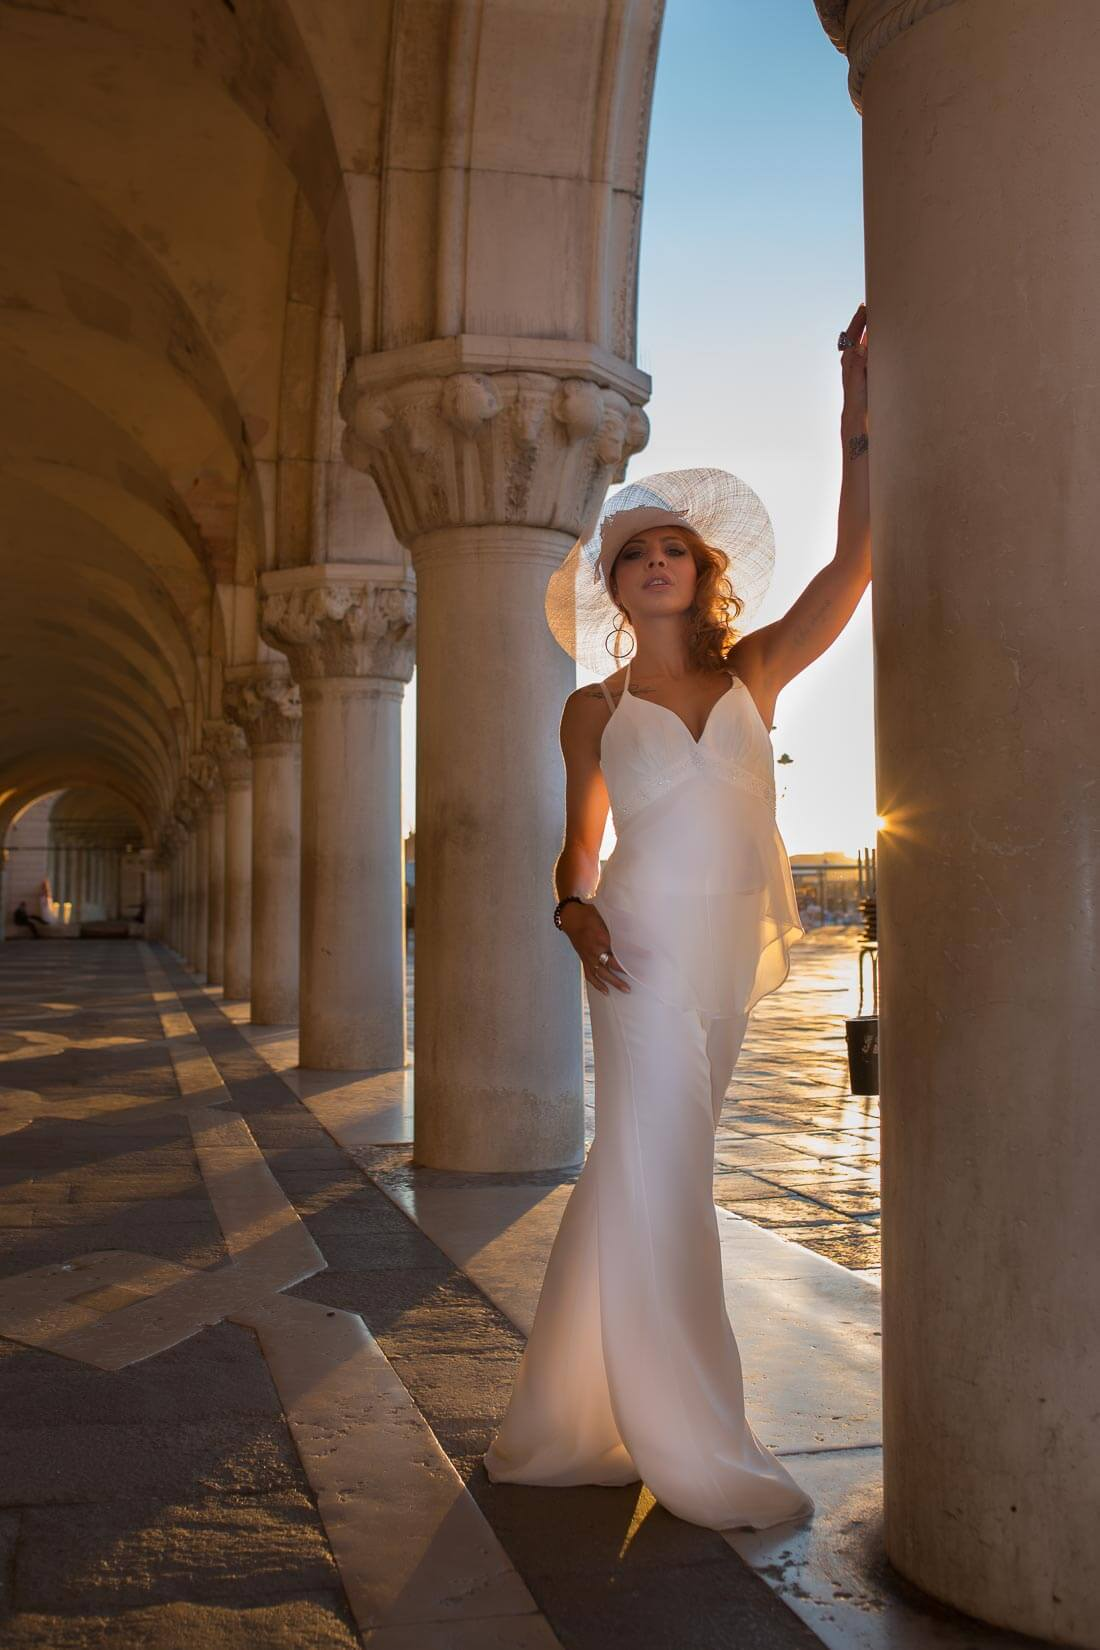 Fotograf-Fotostudio-Dresden-Venedig-Fashion-Markusplatz-Beauty-Styling-Dress-Hut-Kulisse-Italien-Sonnenaufgang